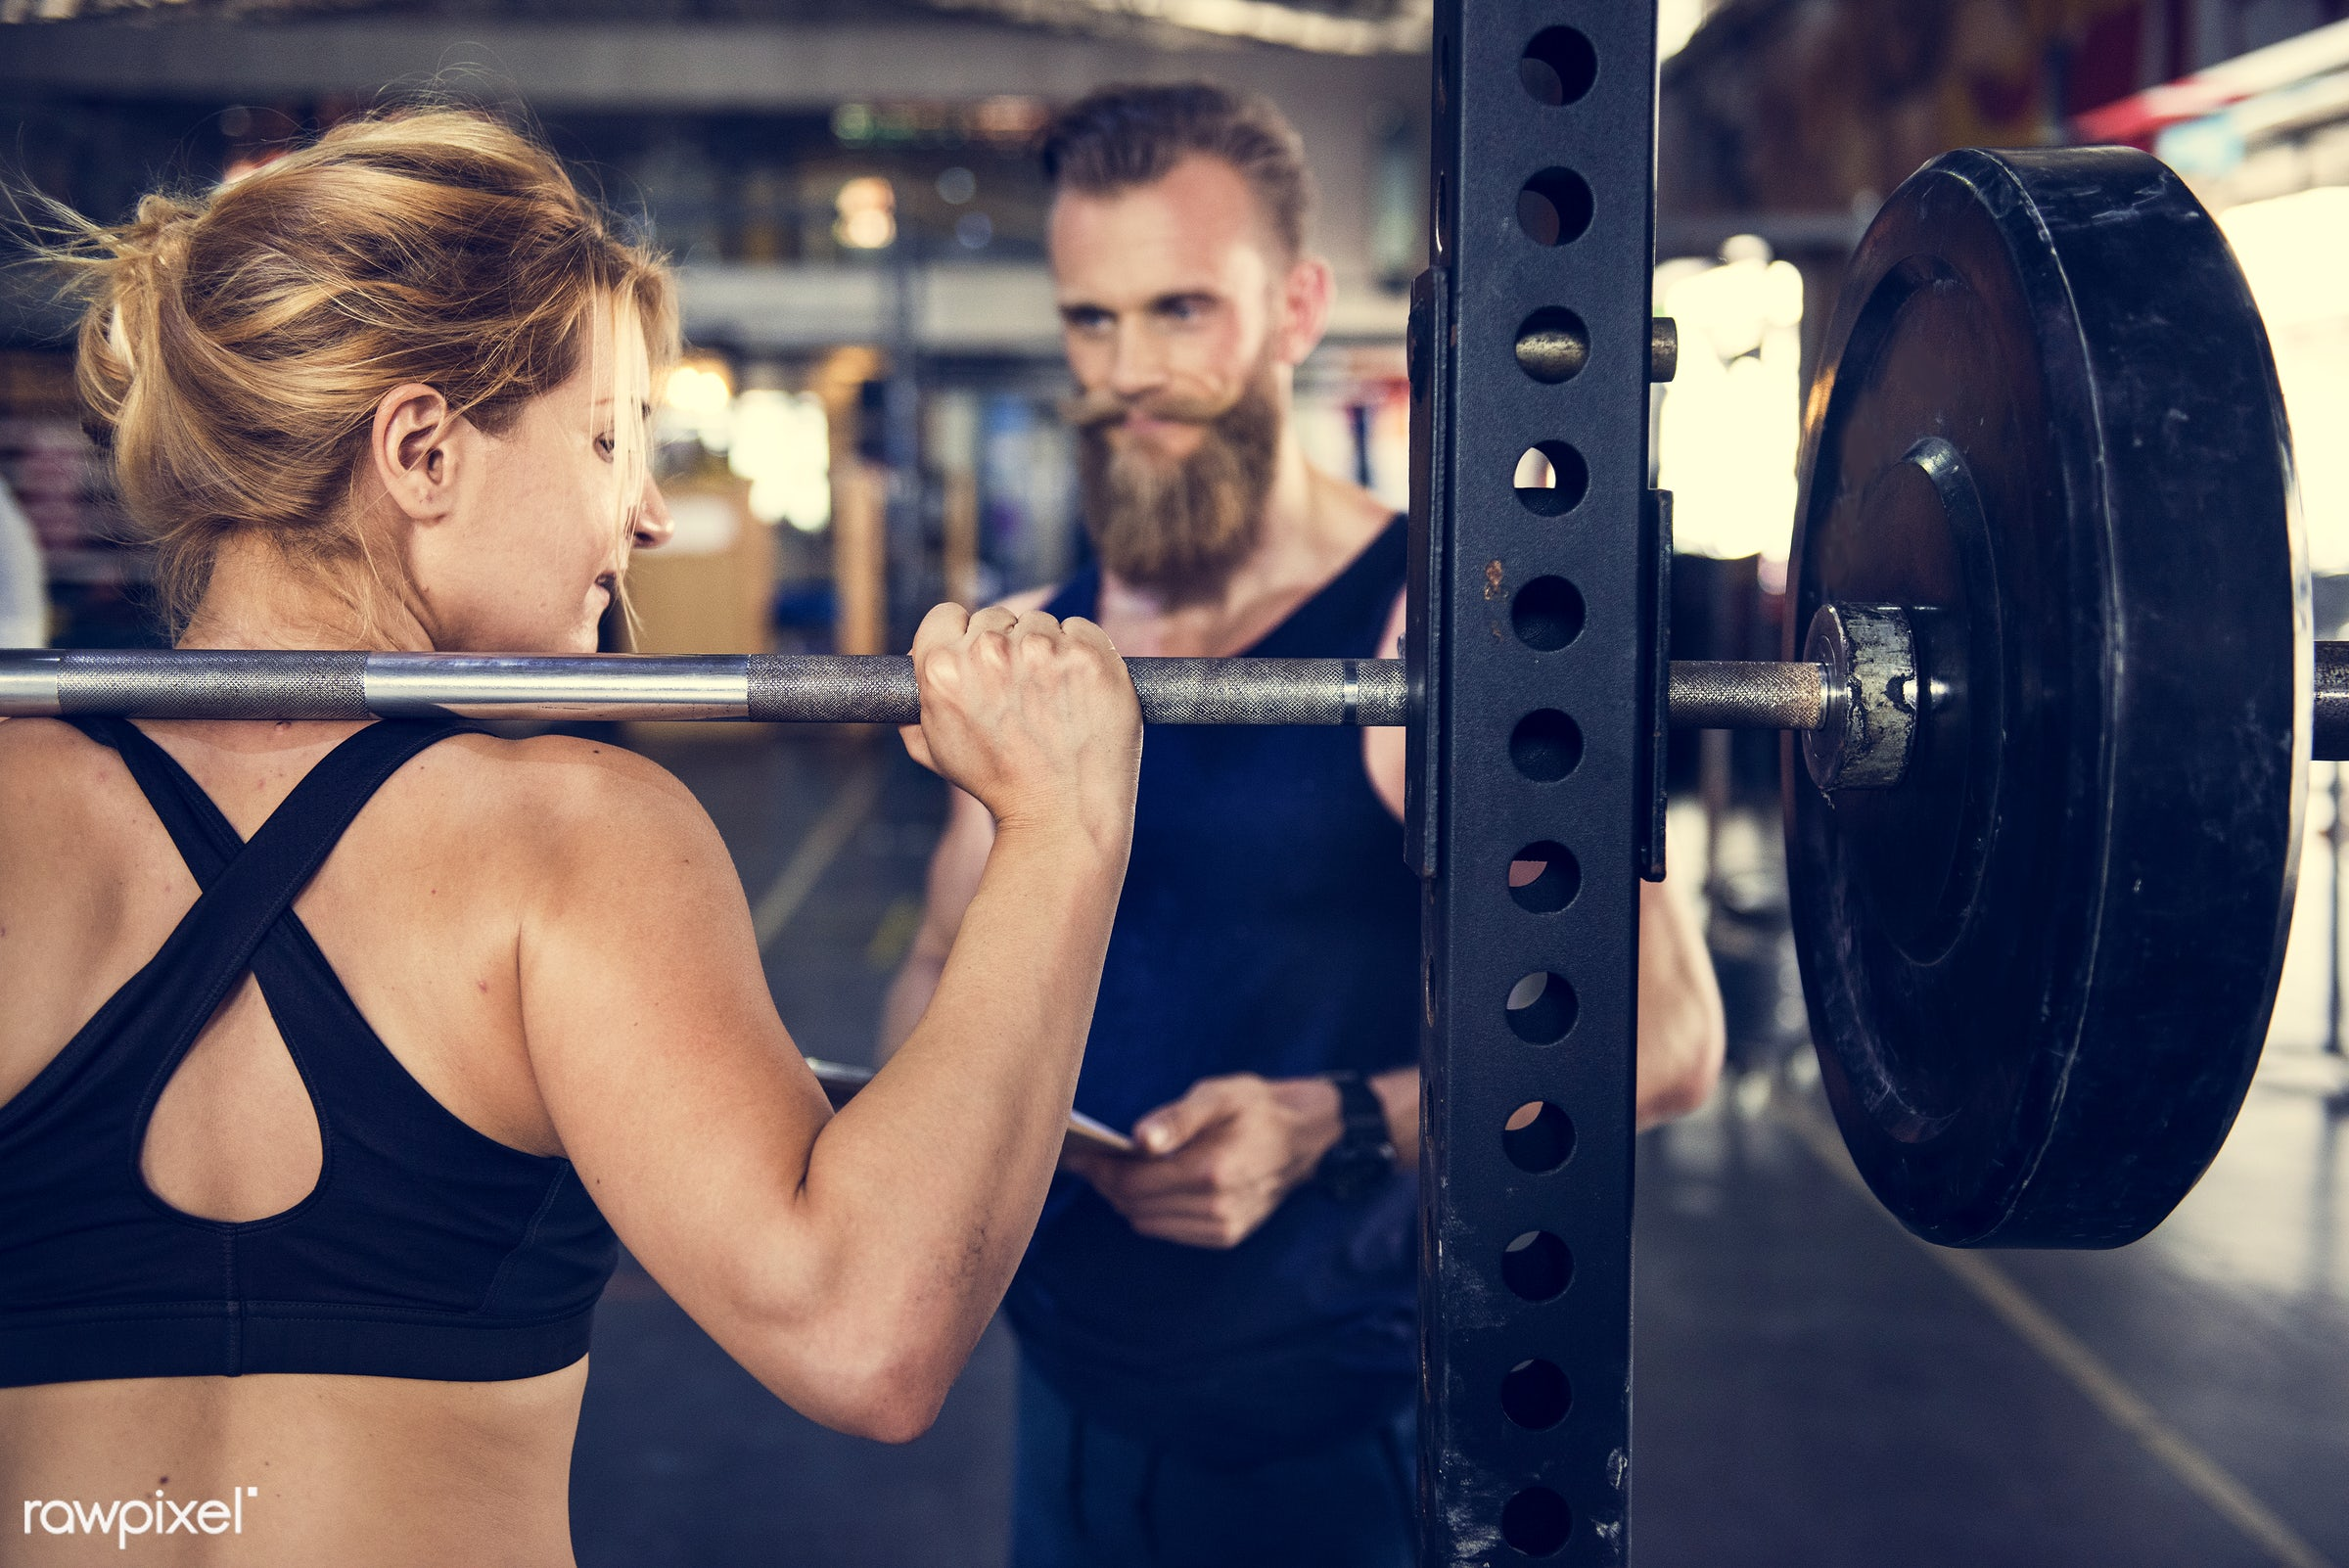 At the gym - active, activity, athlete, athletic, barbell, body, buff, caucasian, equipment, female, fit, fitness, gym,...